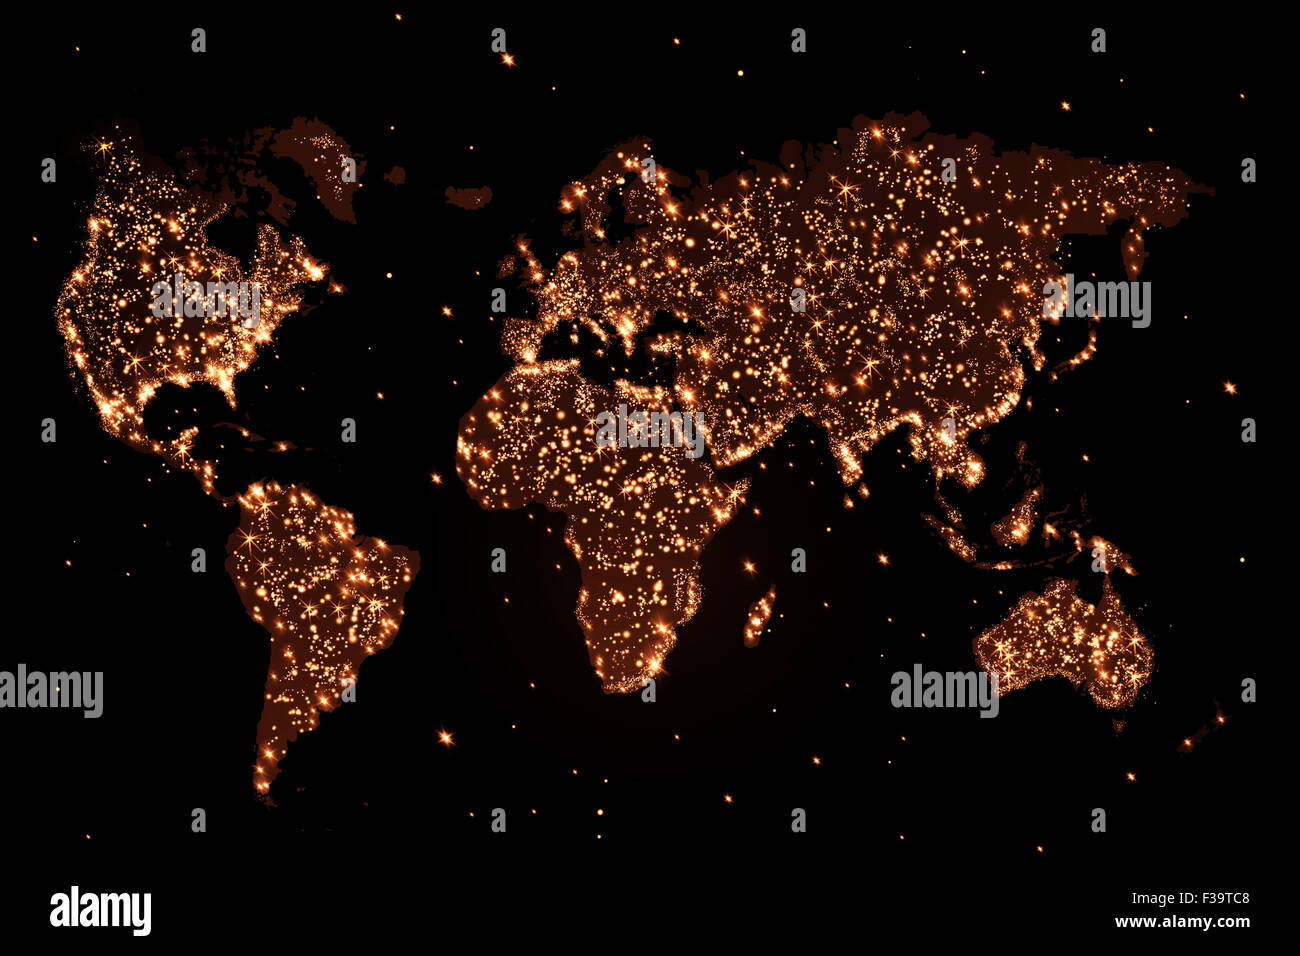 Abstract world map with lights stock photo 88112536 alamy abstract world map with lights gumiabroncs Gallery